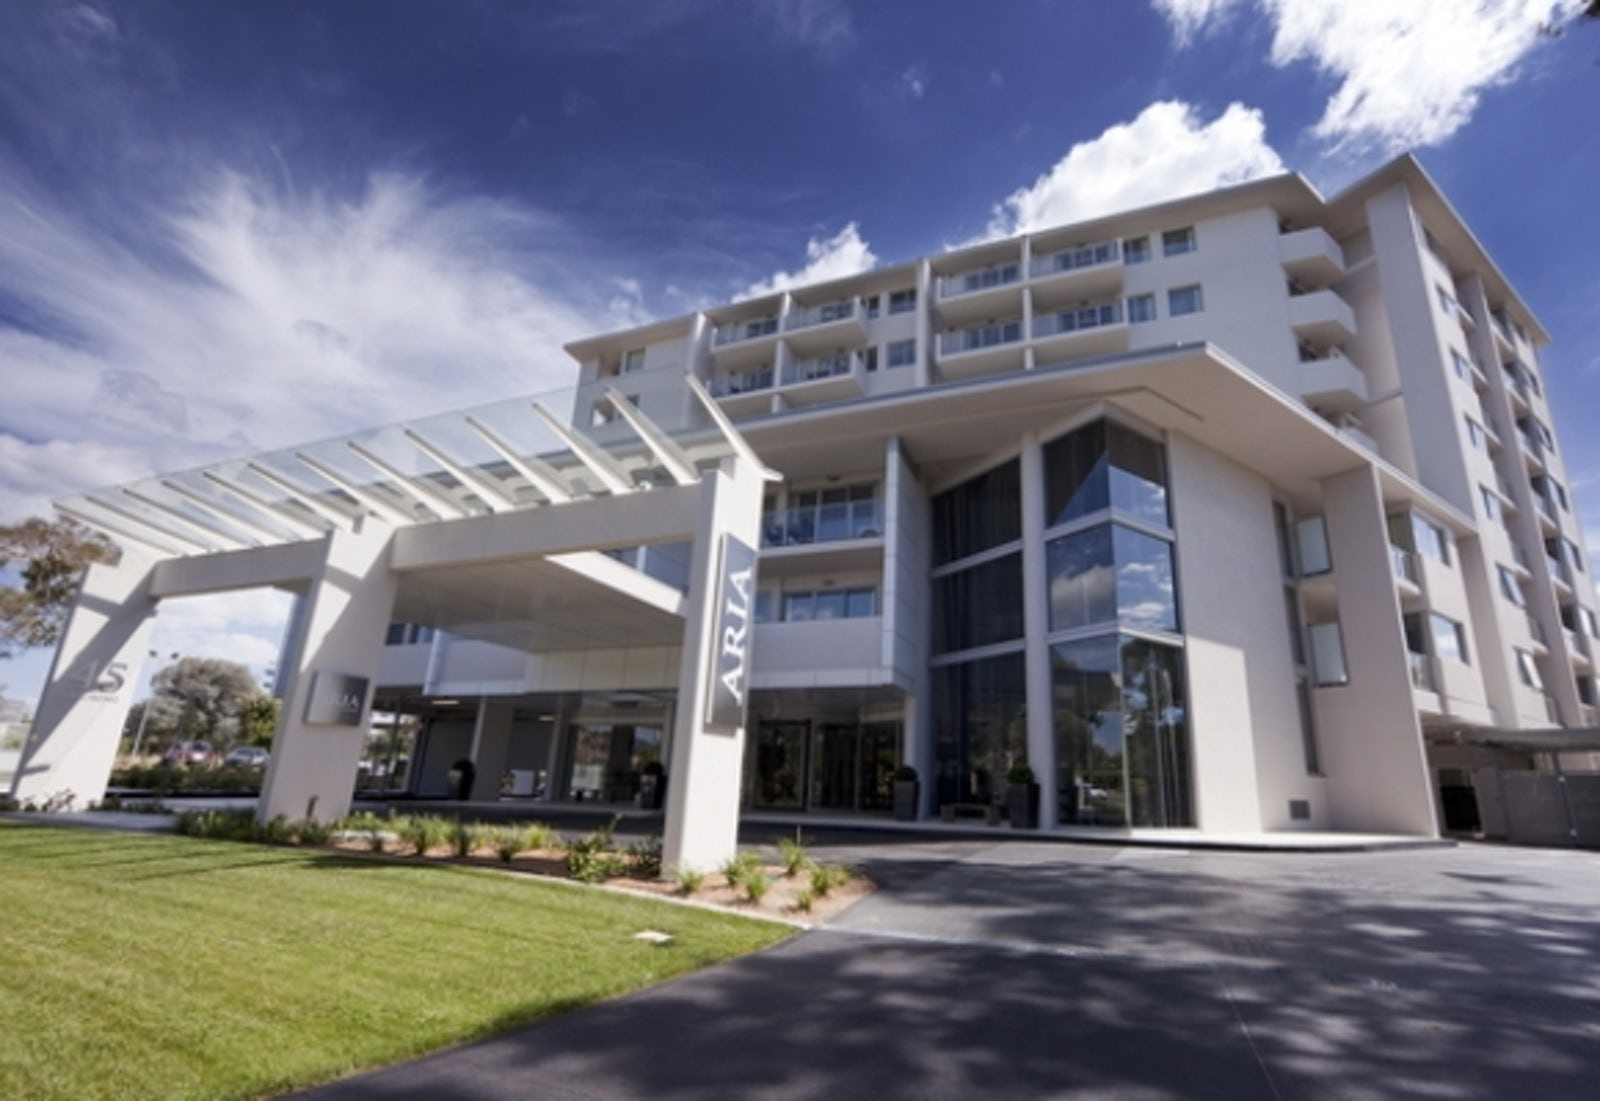 a picture of Aria Hotel based in Canberra CBD